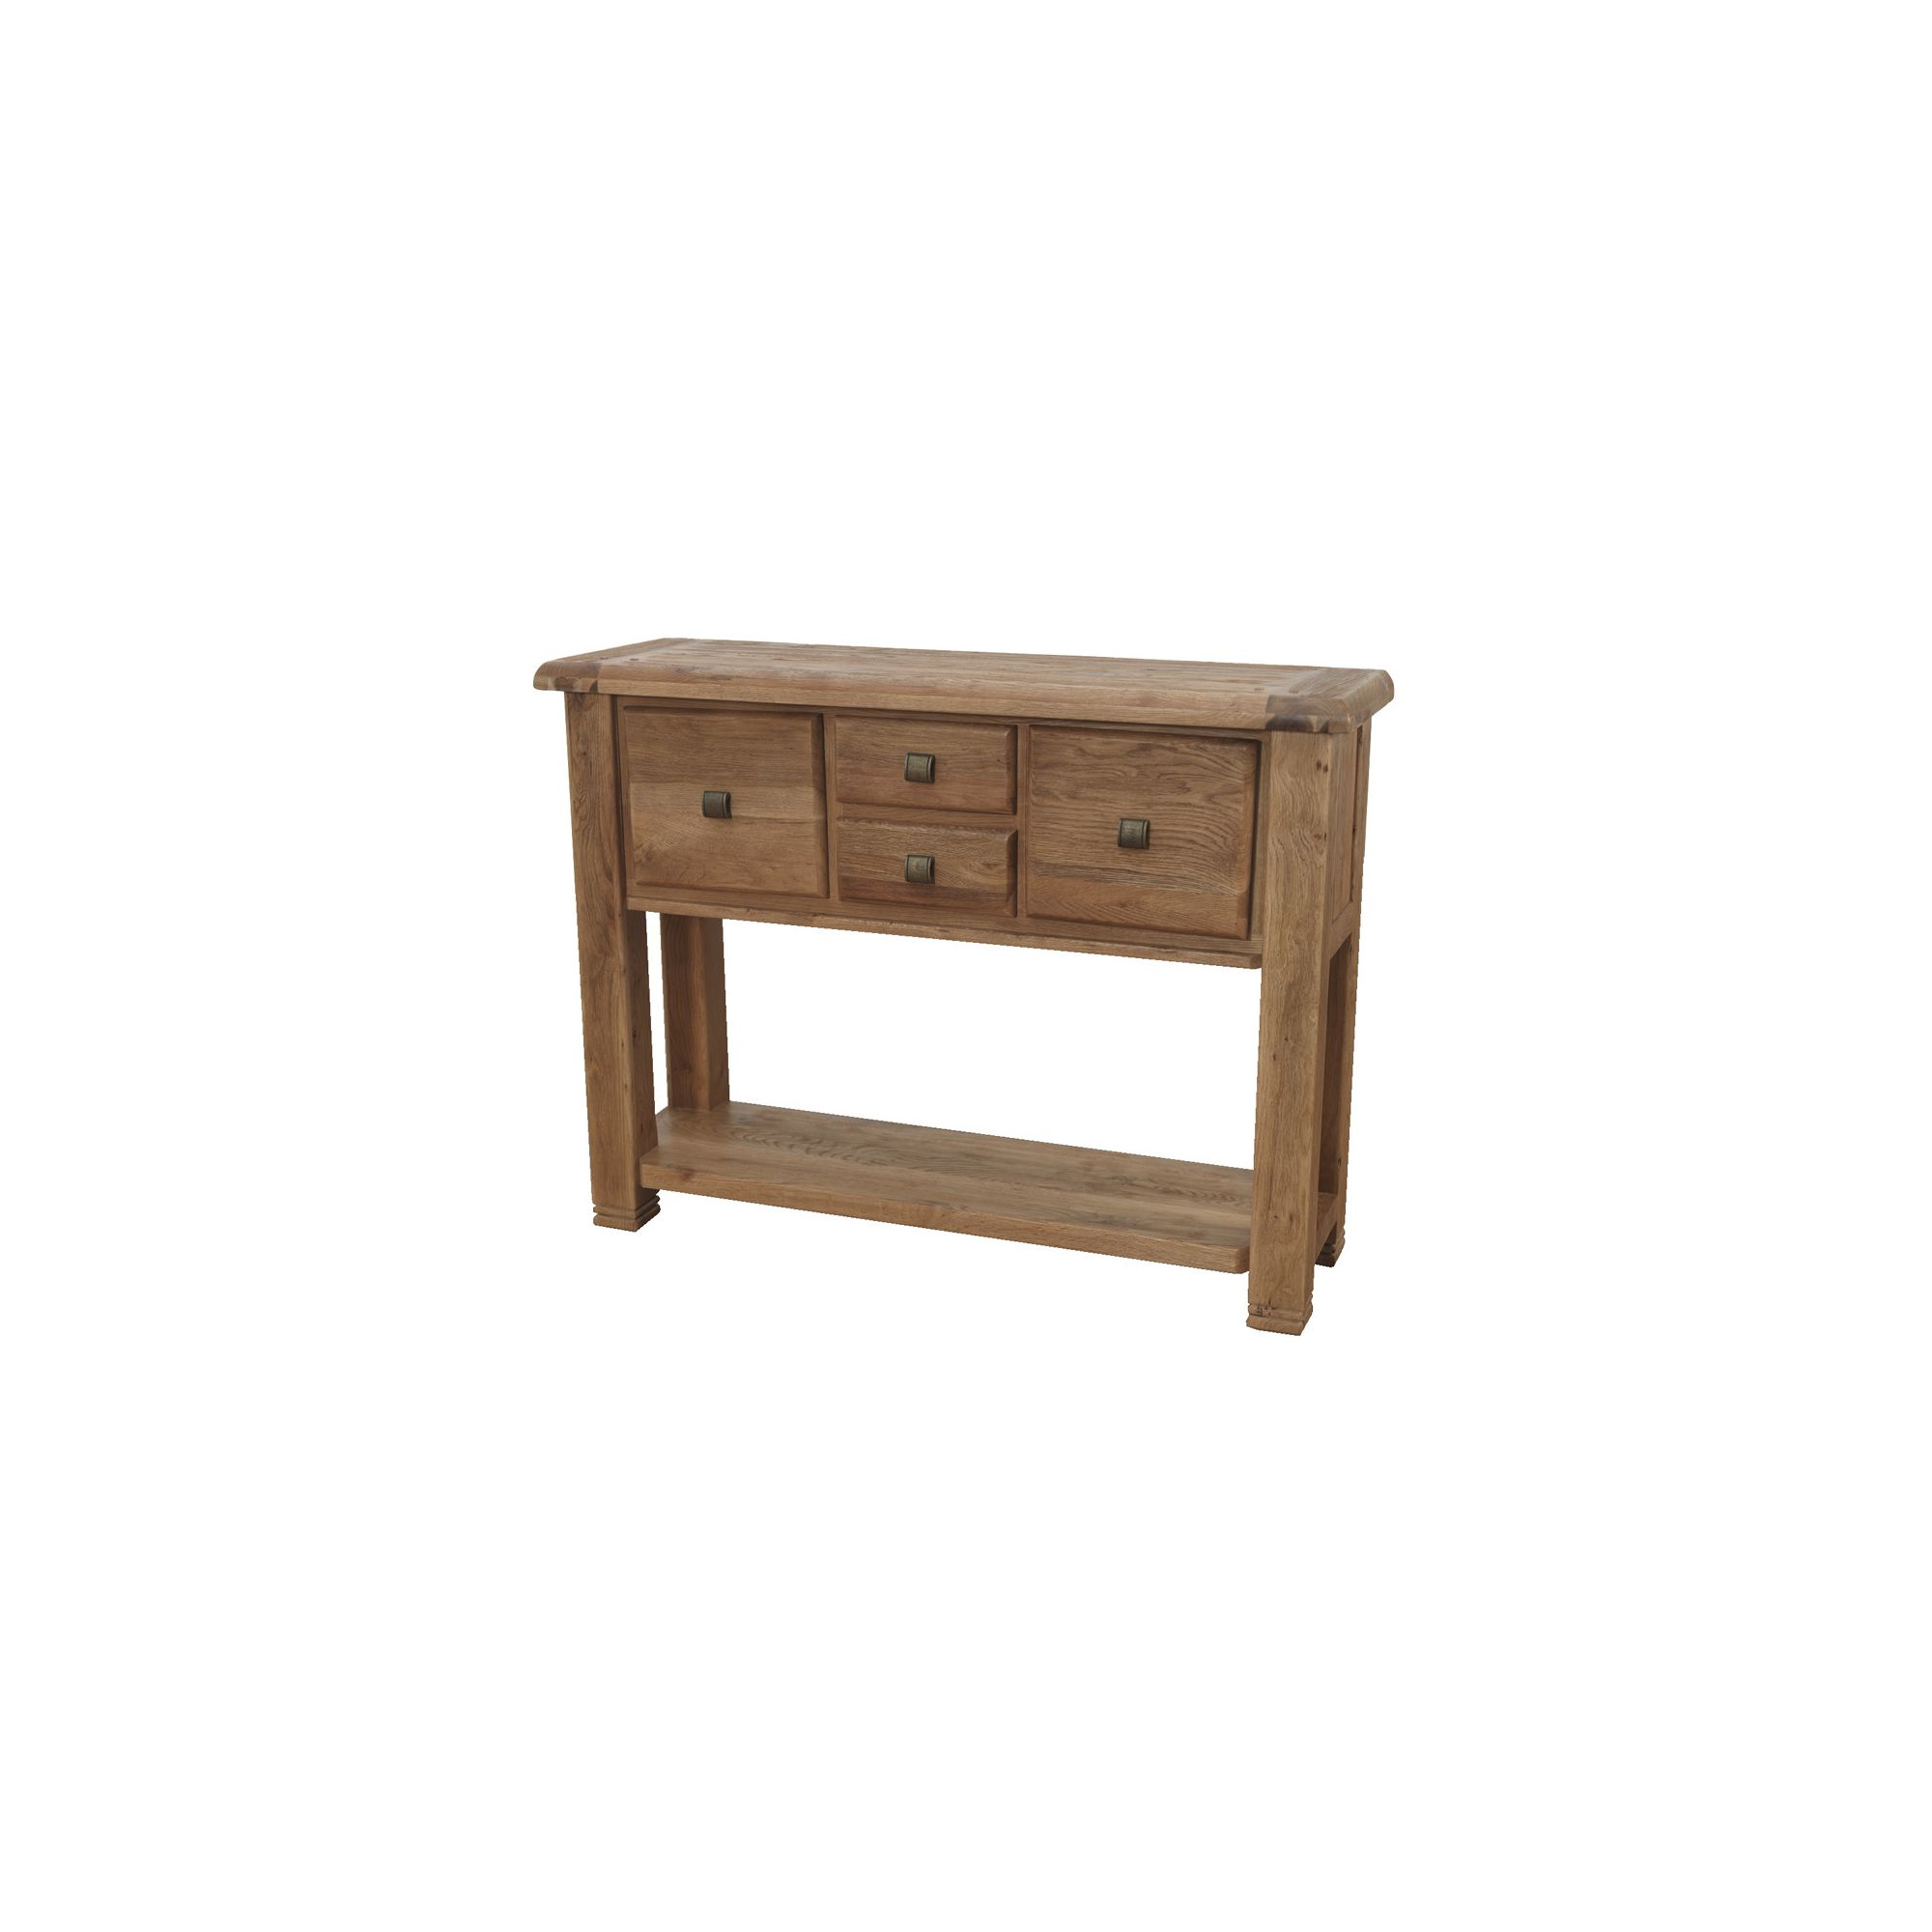 Furniture Link Danube Large Console Table in Weathered Oak at Tesco Direct